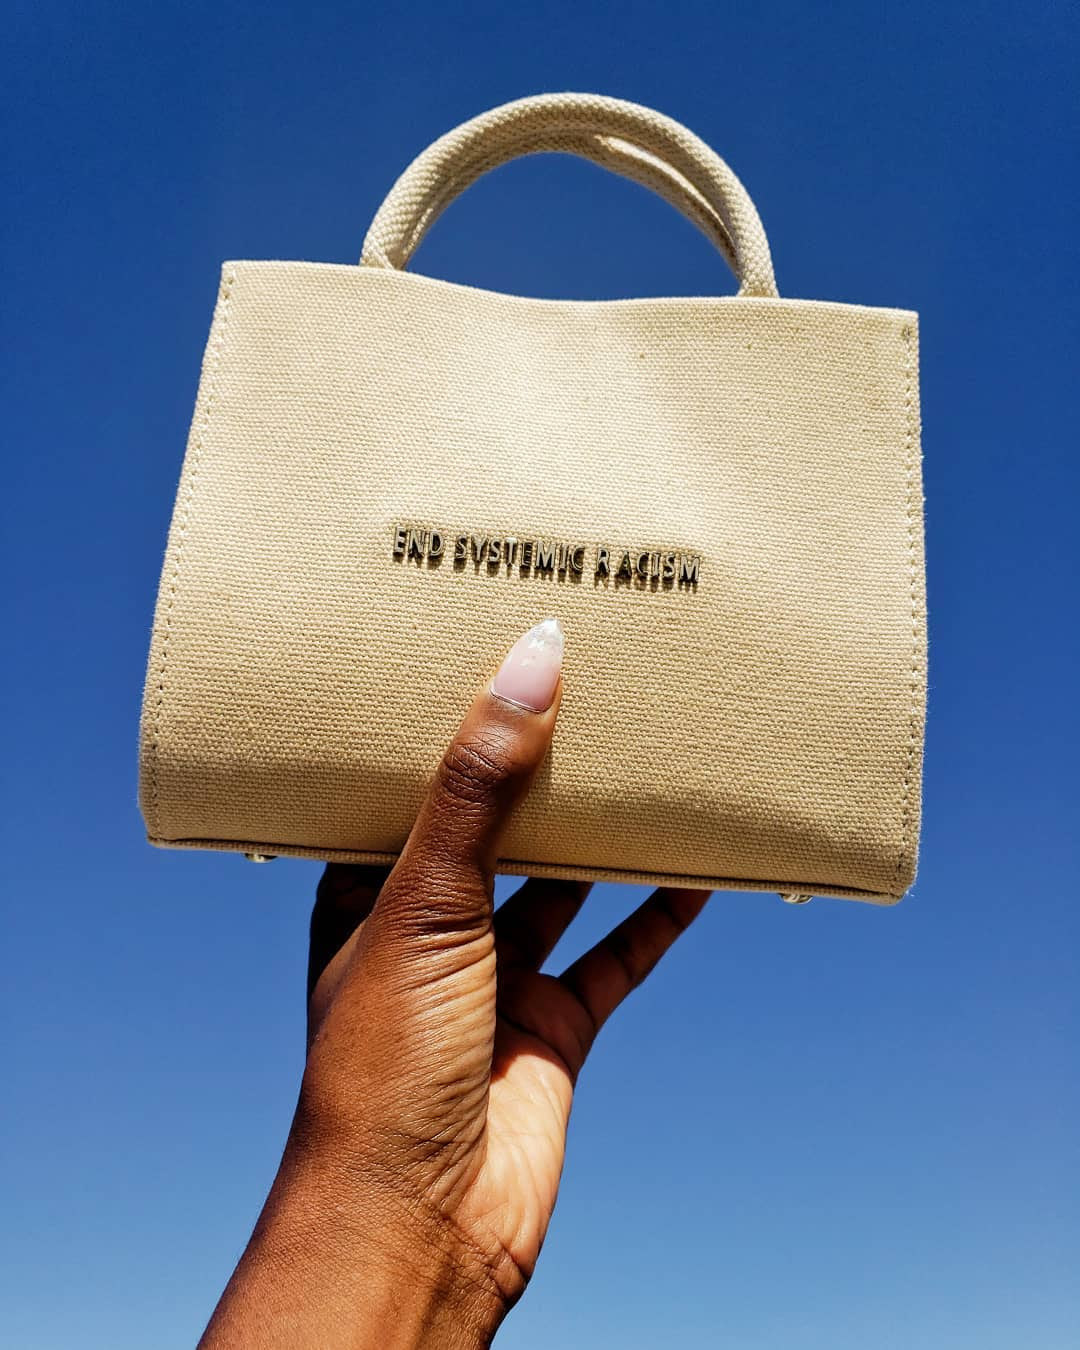 """buzzfeed editor holding a small, square tan bag reading """"End Systematic Racism"""" in small metal letters on the front"""